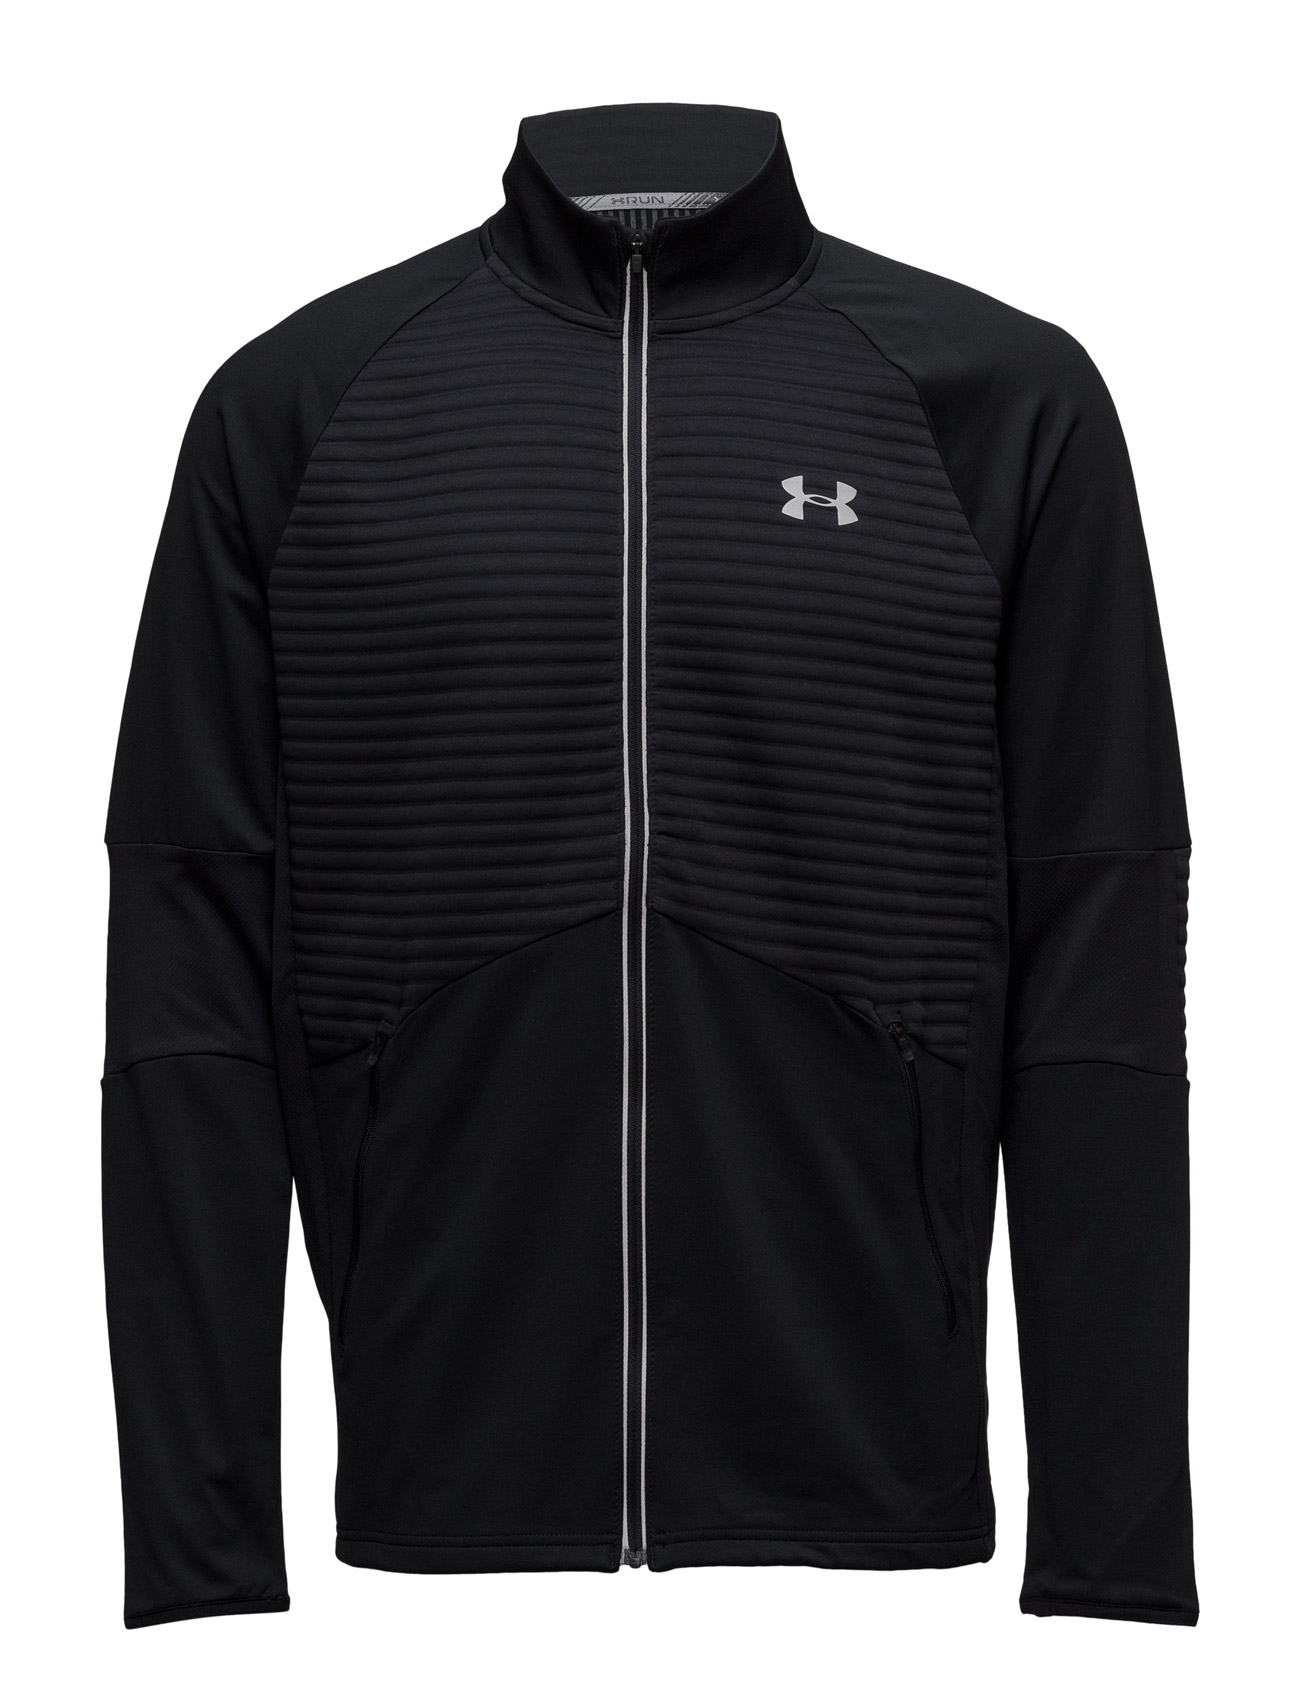 under armour – Nobreaks cgi jacket på boozt.com dk